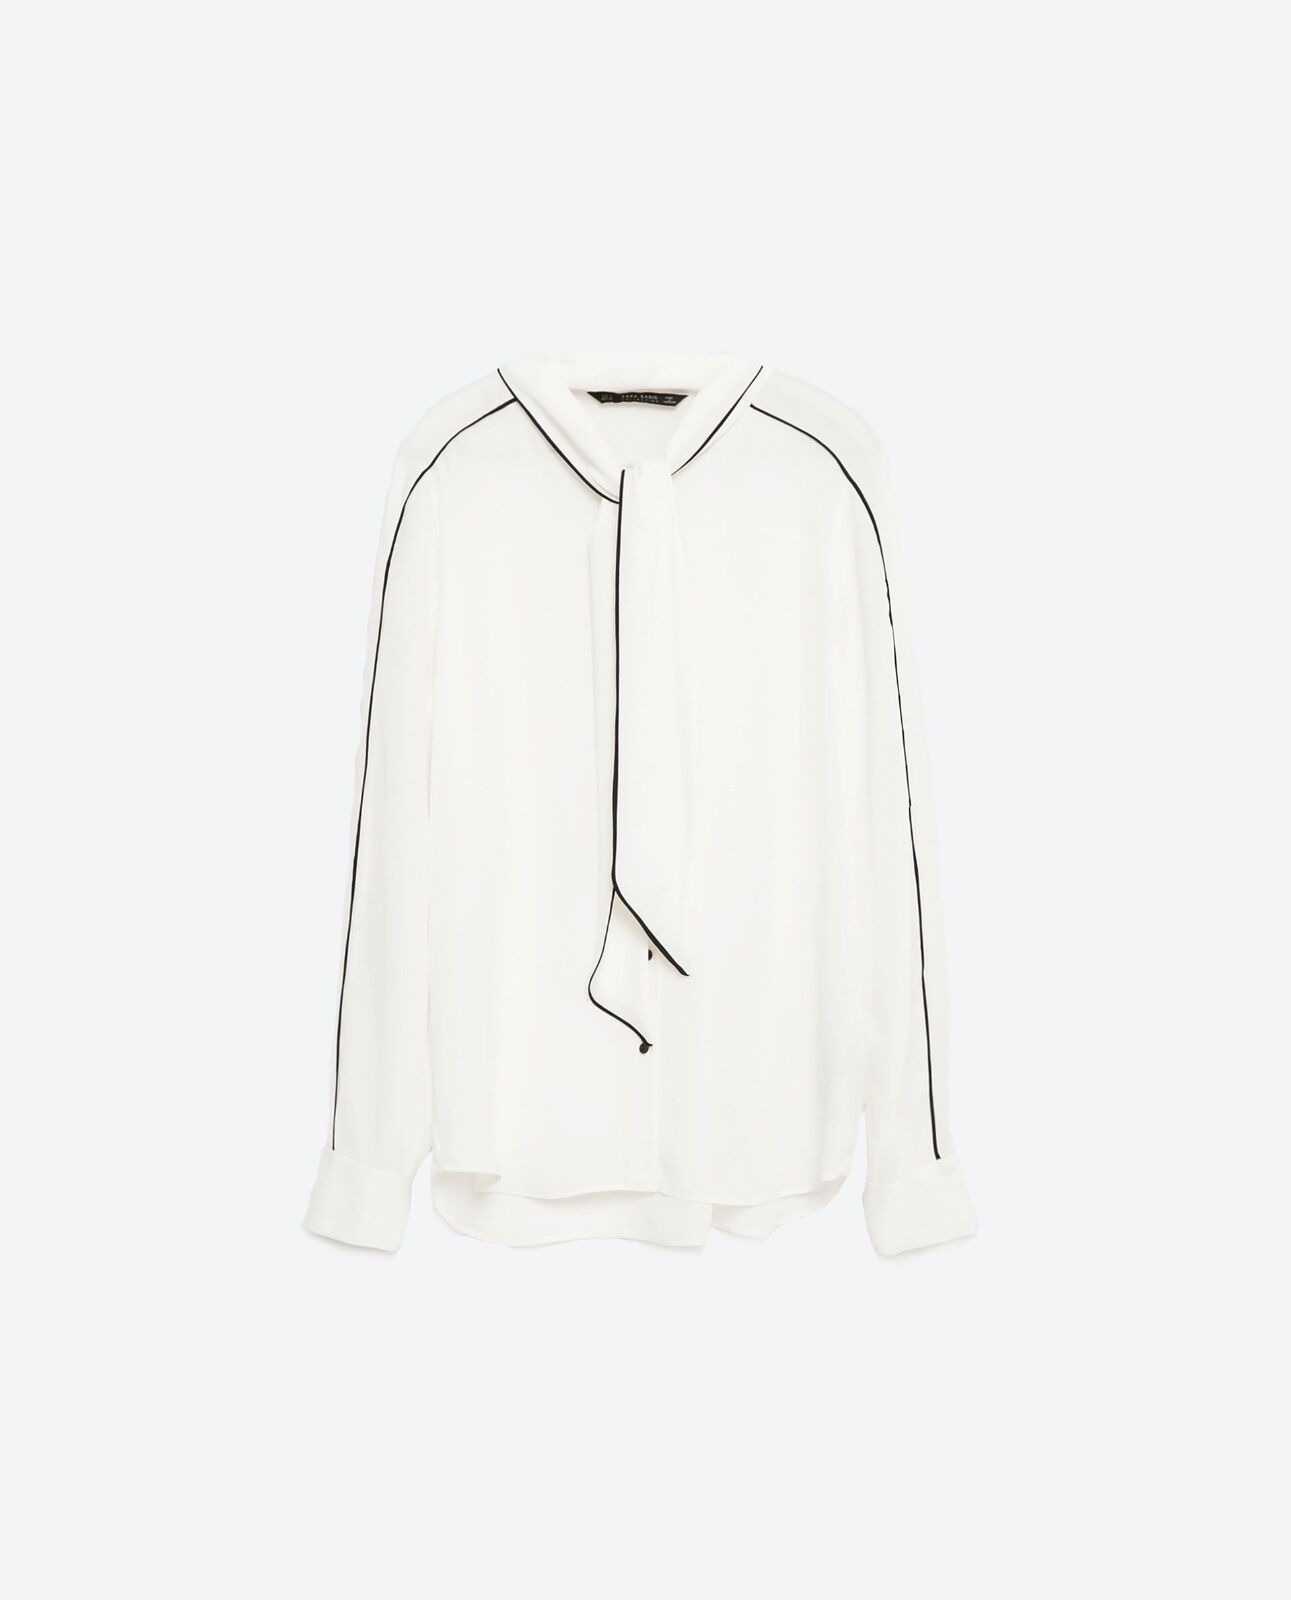 Zara Tie-Up Blouse Top Größe M NWT